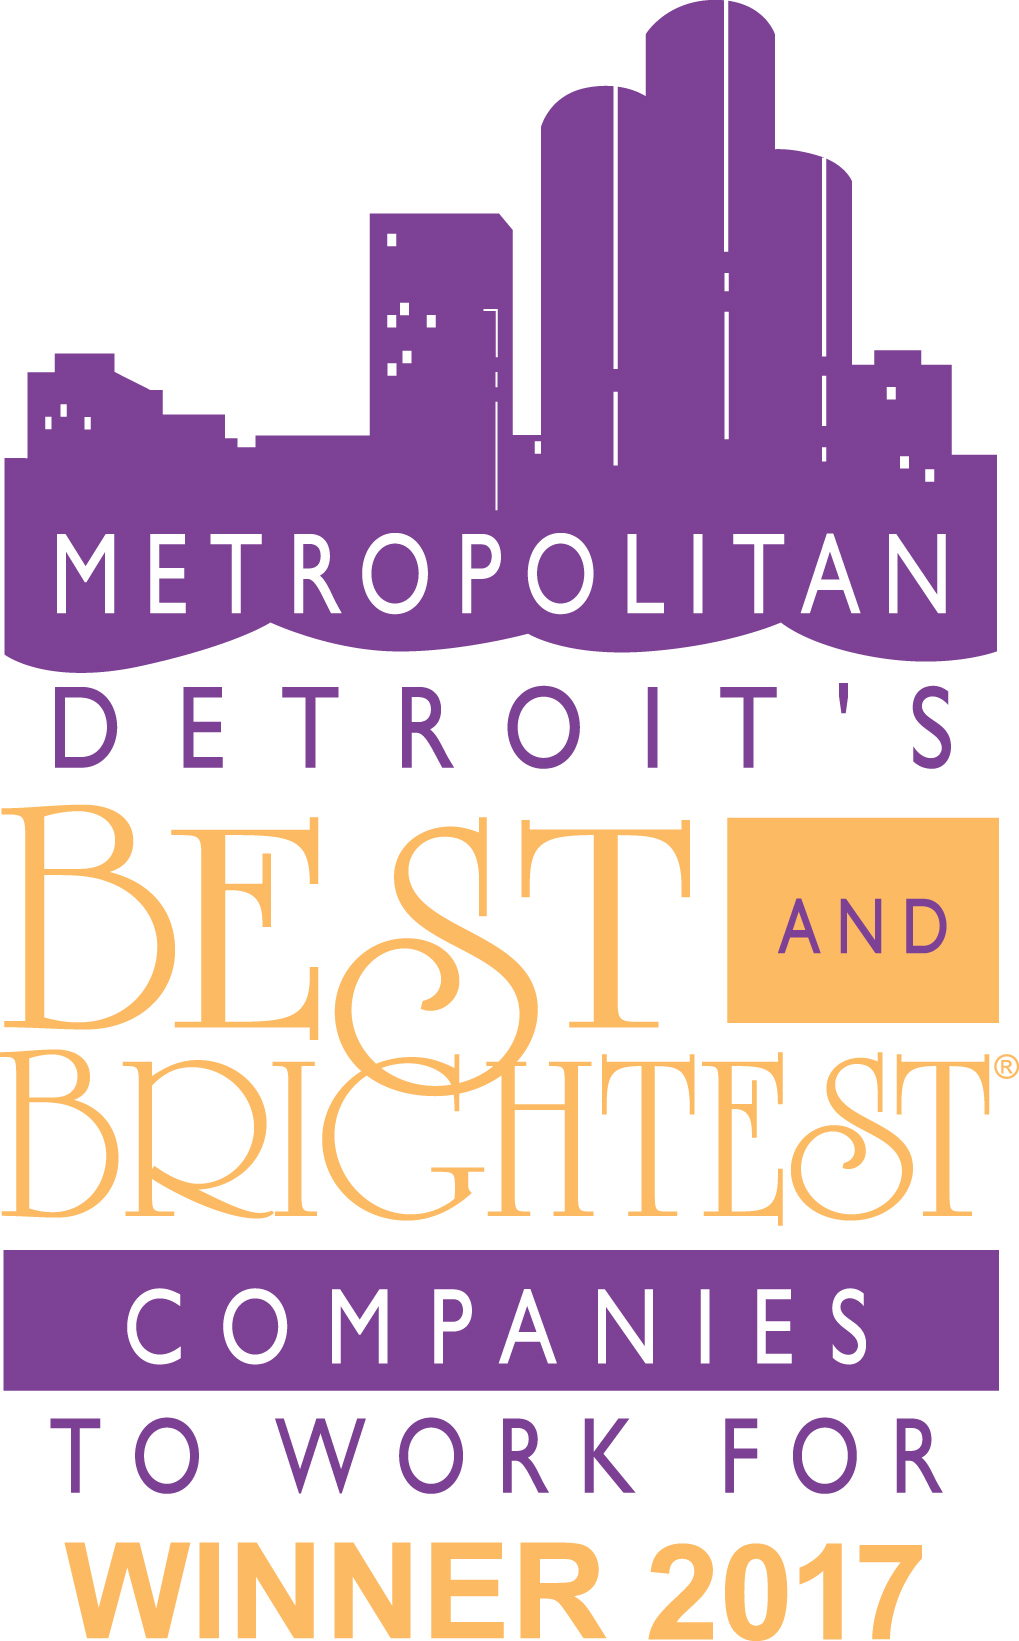 Danlaw has been named one of Metropolitan Detroit's Best and Brightest Companies To Work For®